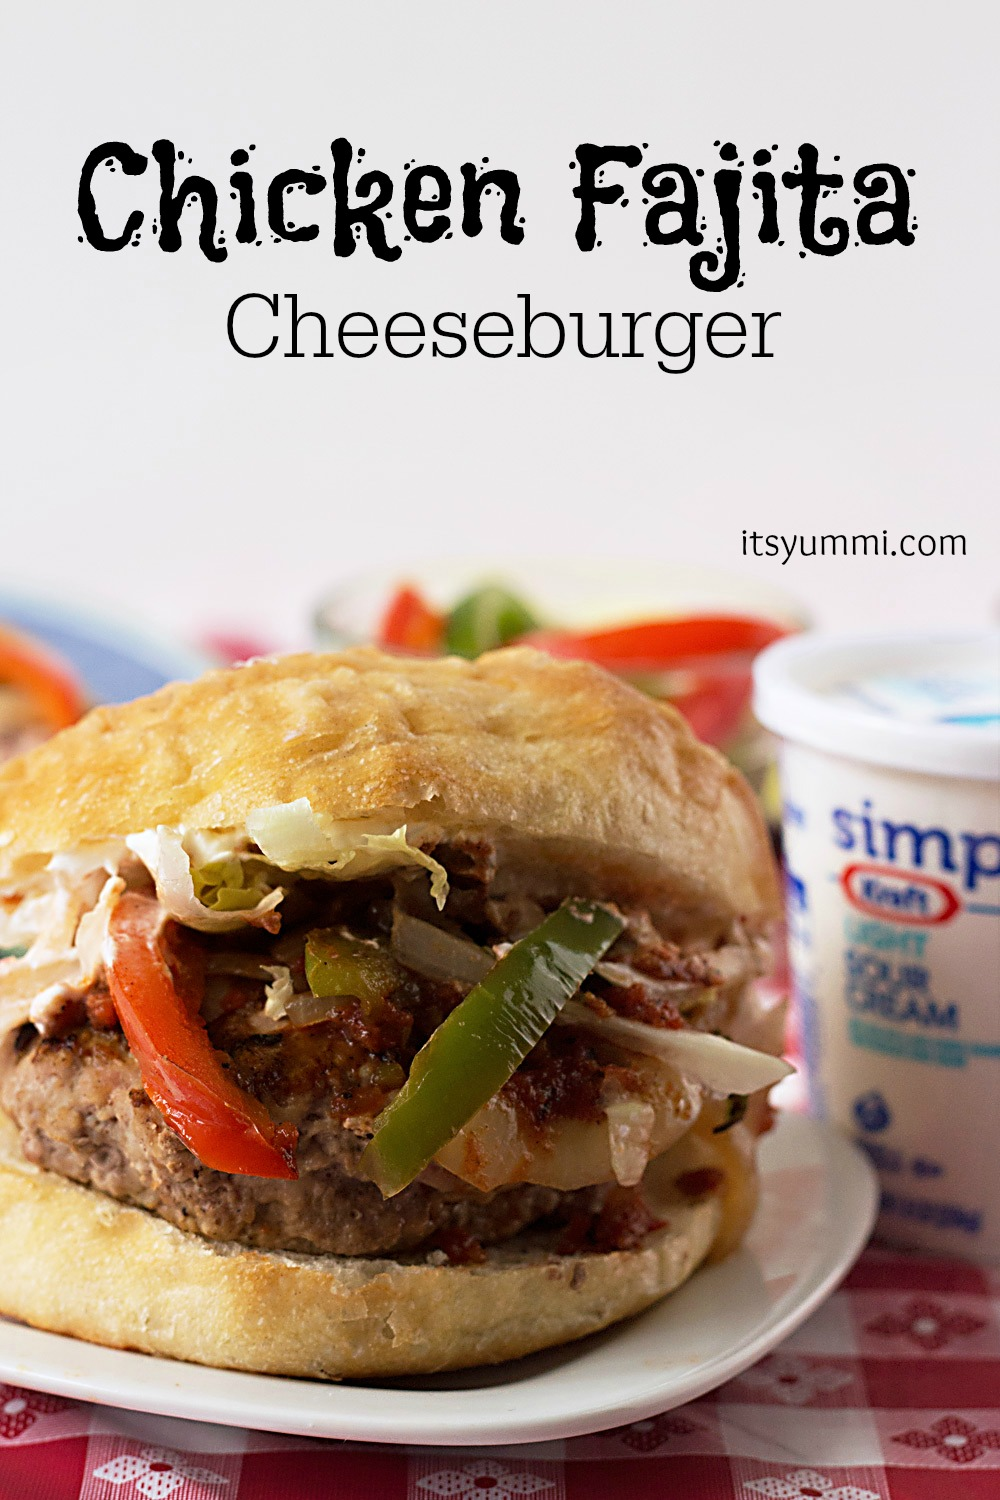 Chicken Fajita Cheeseburger from ItsYummi.com #SayCheeseBurger #shop